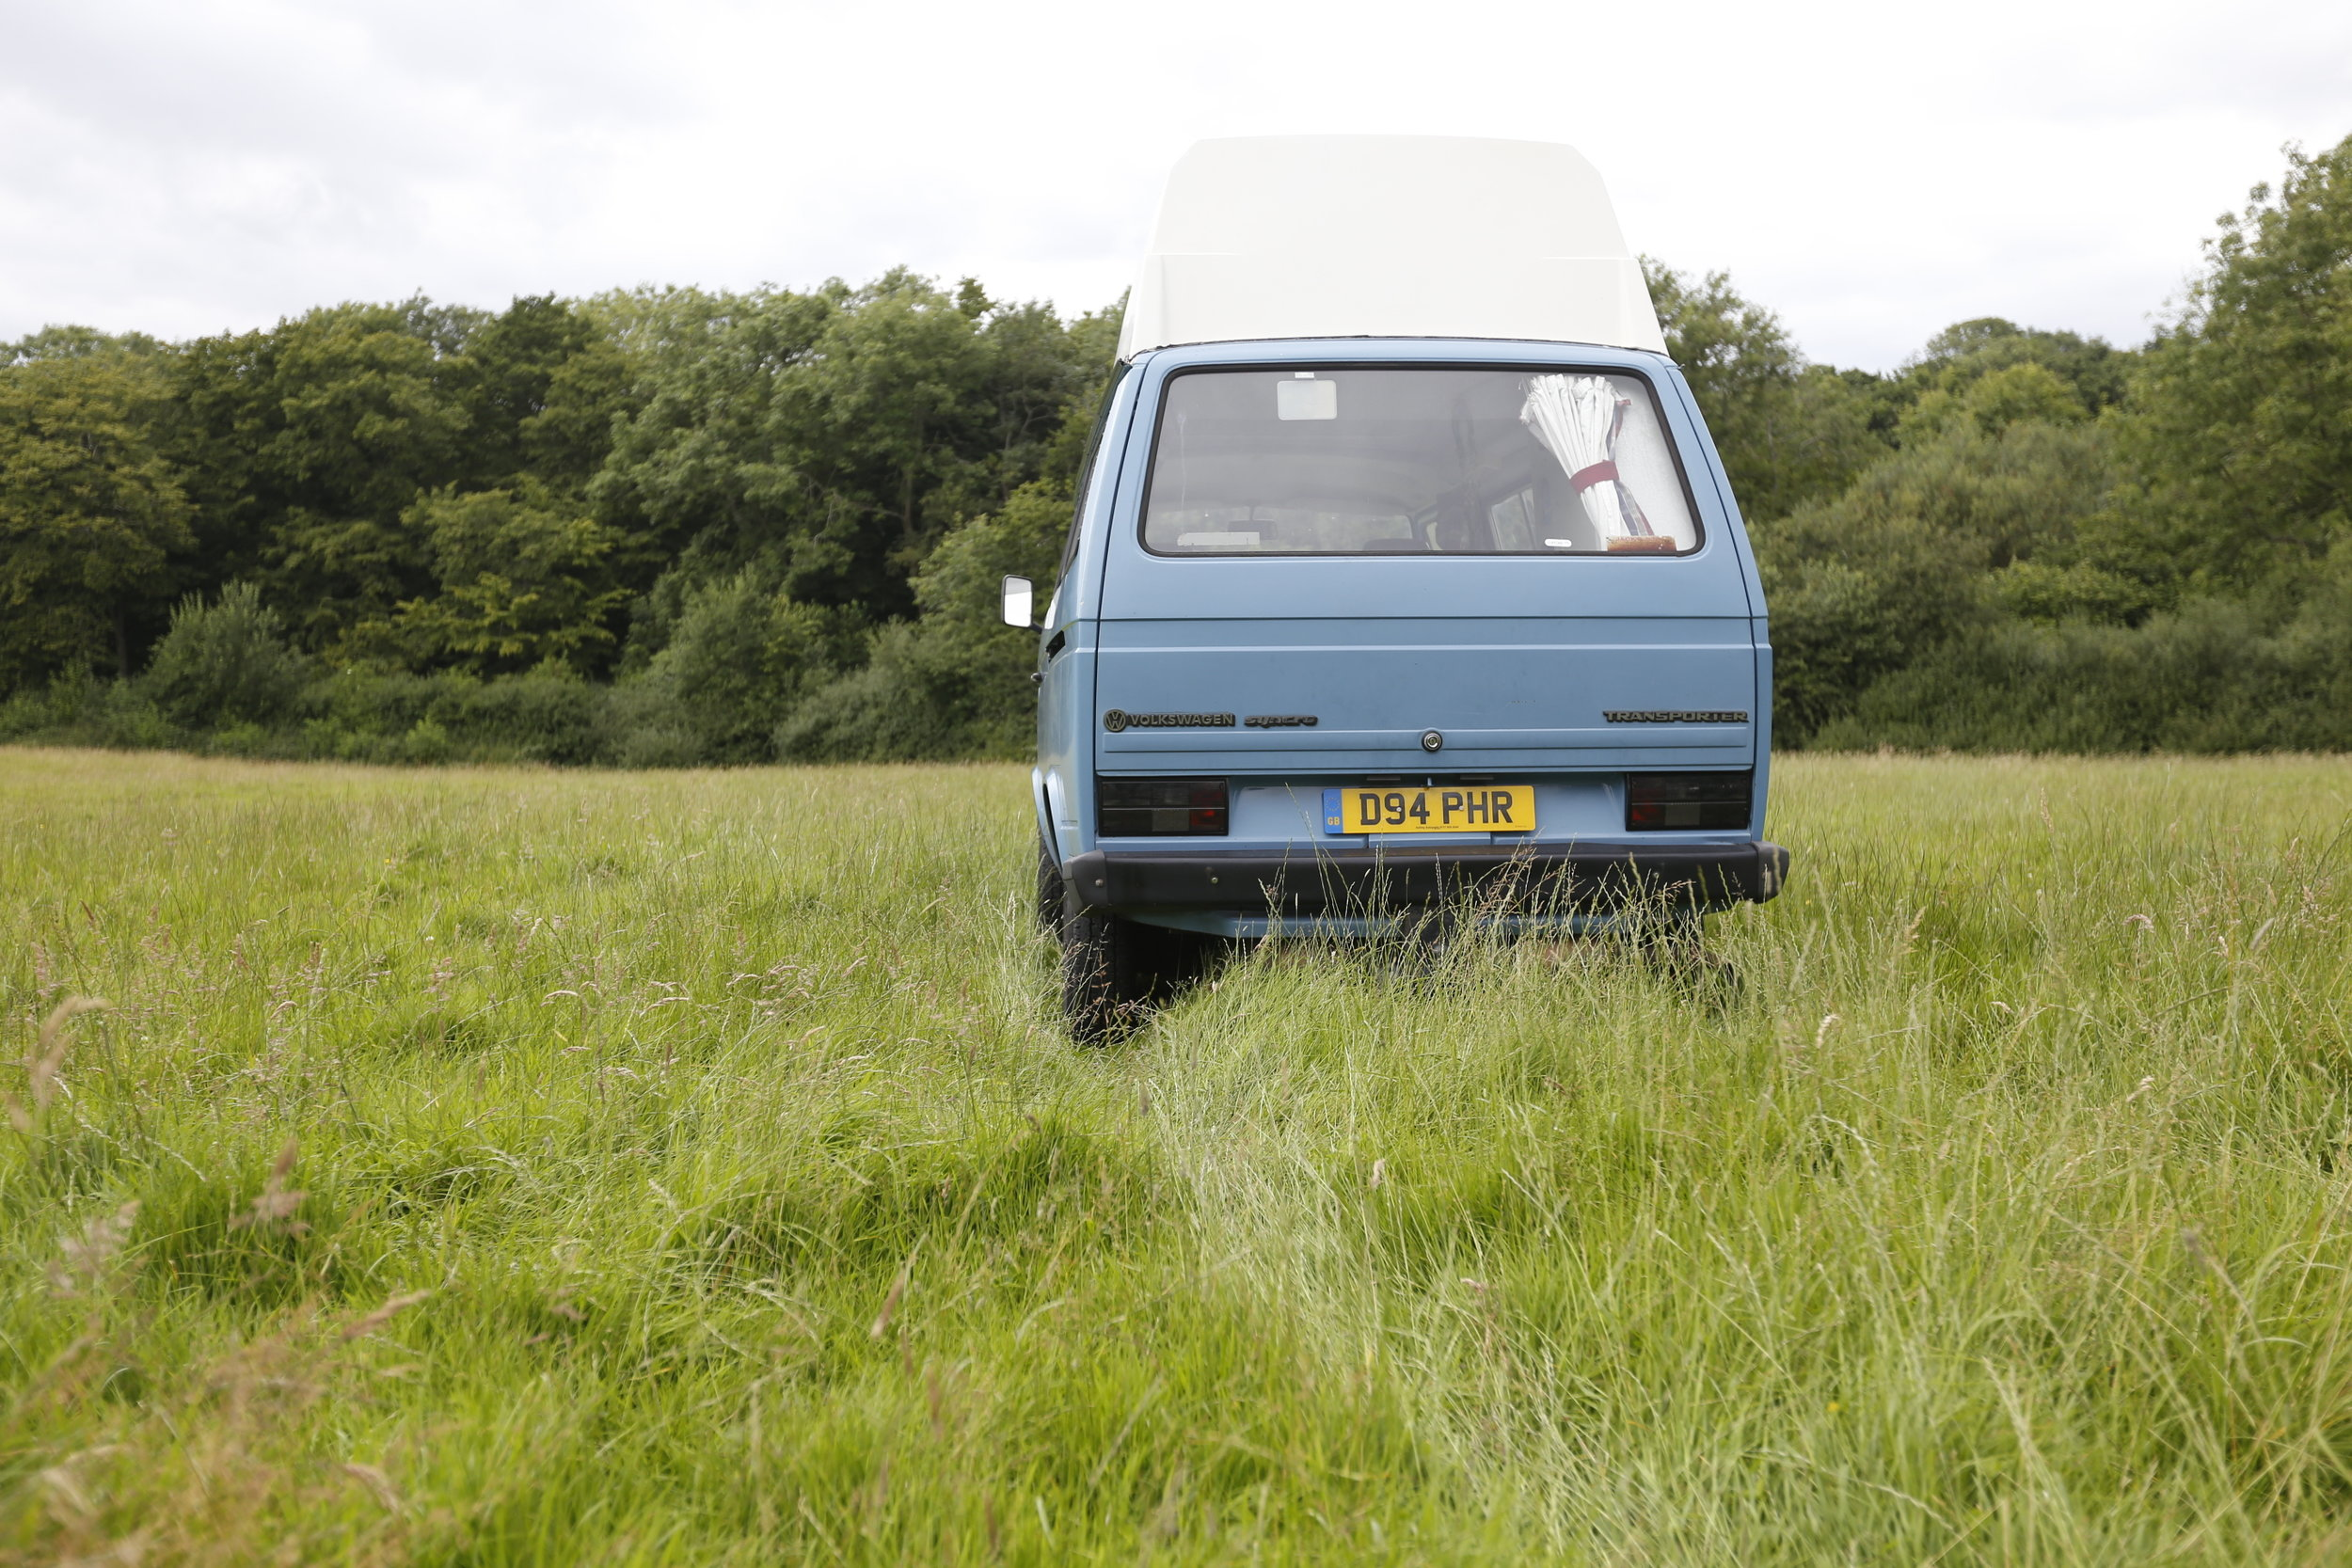 syncro, vw t25, van life, vanlife, #vanlife, syncrolife, travel, travel blog, blogger, exploration, sponsored photographer, jack macgowan, bicycle touring apocalypse, explorer, cycling, bikepacking, adventure cycling